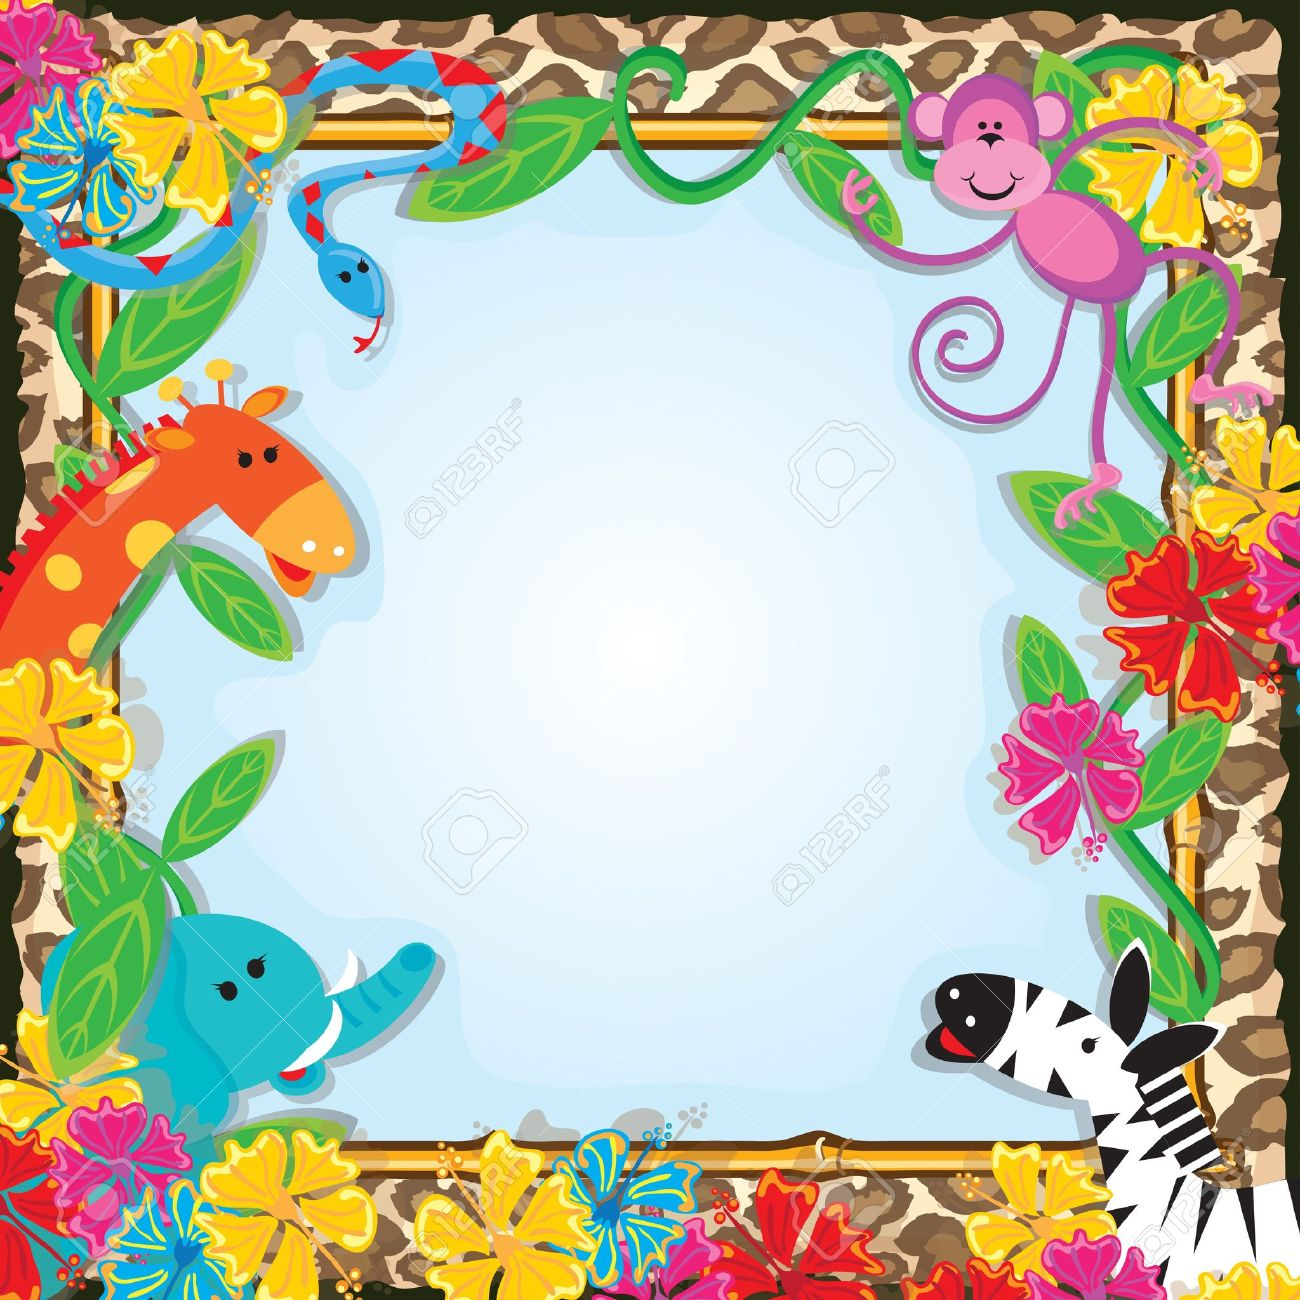 Jungle zoo party invitation bright and colorful jungle animals jungle zoo party invitation bright and colorful jungle animals welcome you to a party stock vector stopboris Choice Image